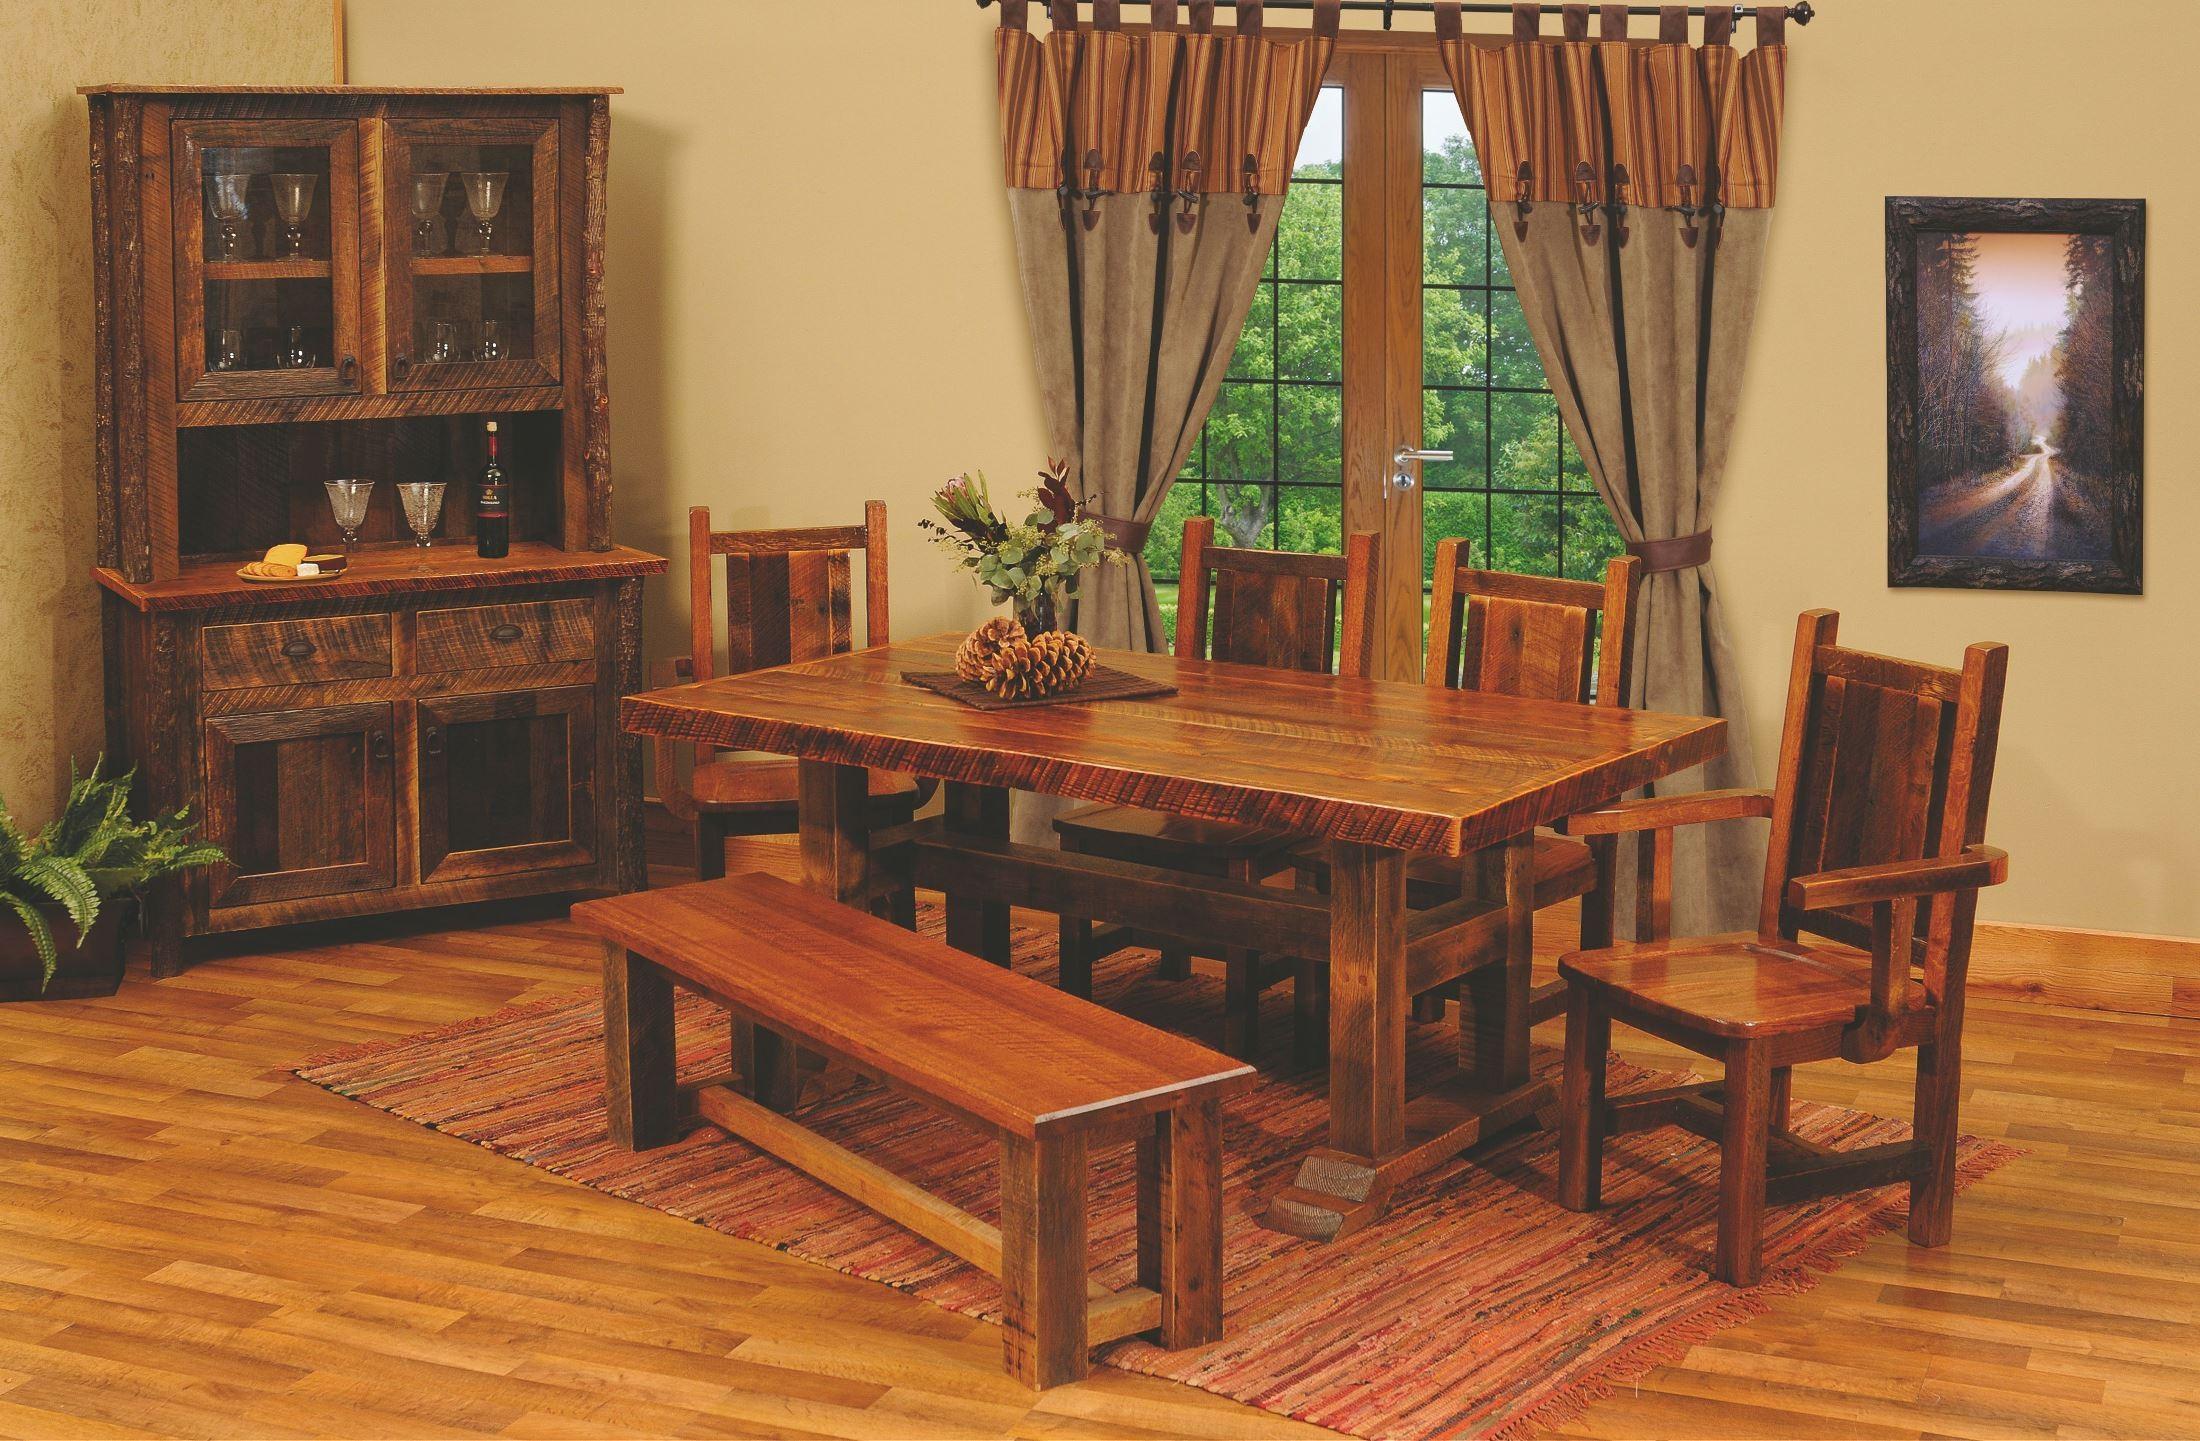 Barnwood timbers 60 traditional oak top rectangular dining table from fireside lodge b15112 - Barnwood dining room table ...